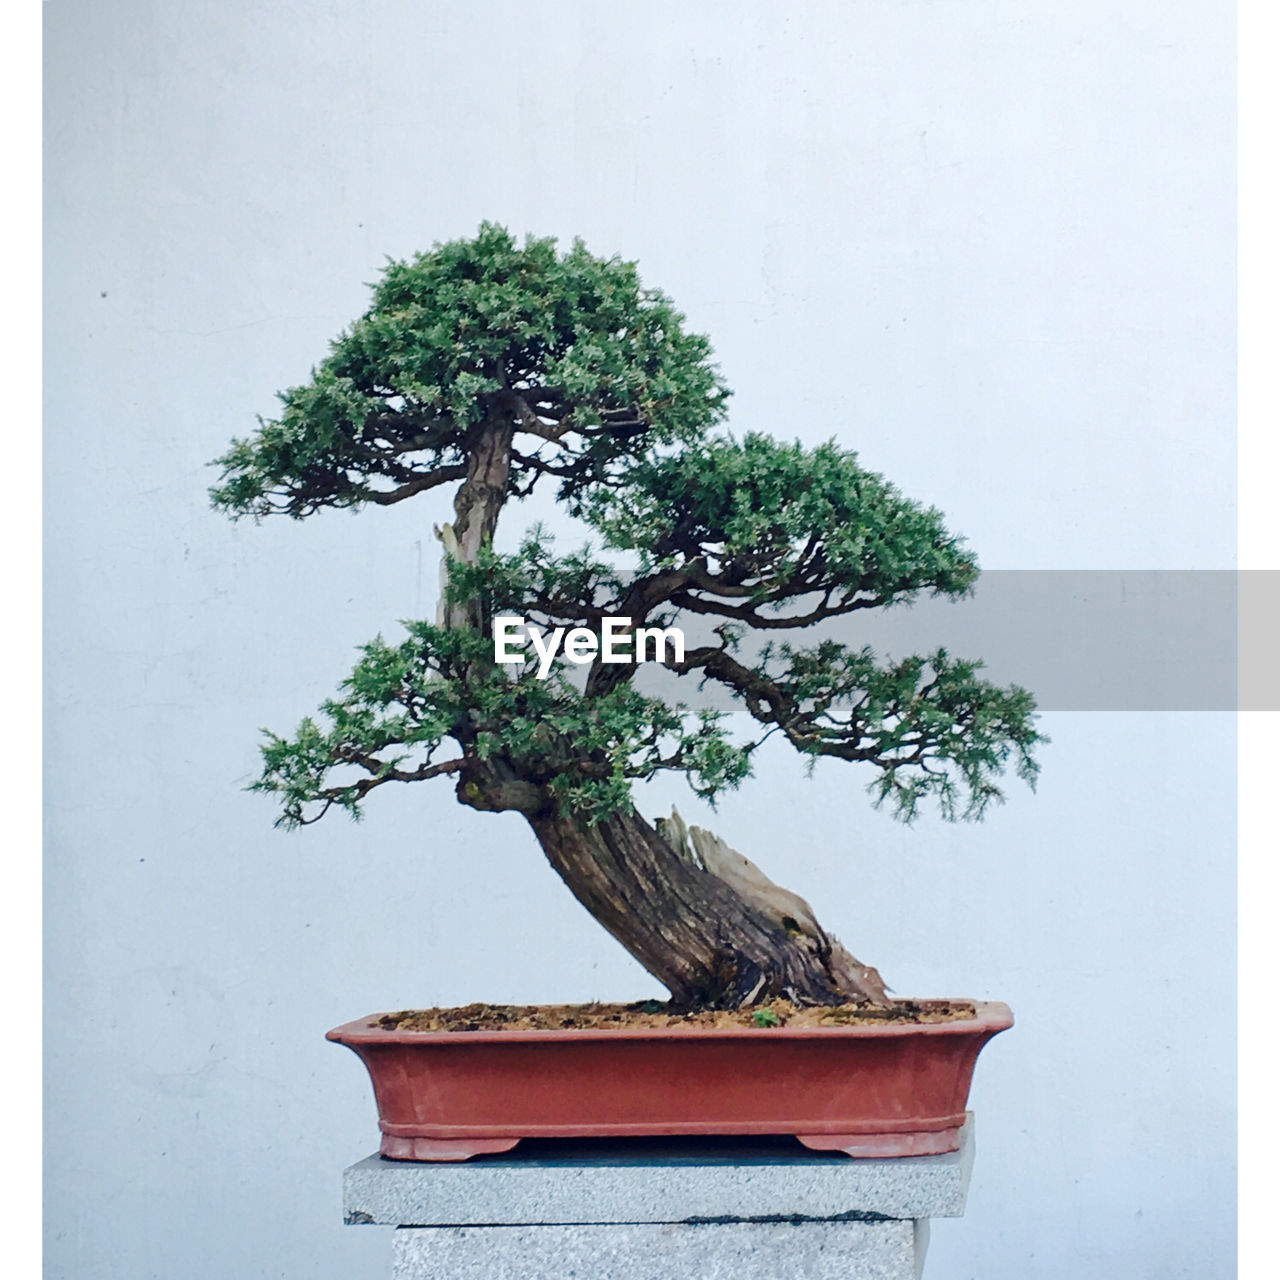 growth, bonsai tree, no people, nature, plant, tree, white background, day, outdoors, close-up